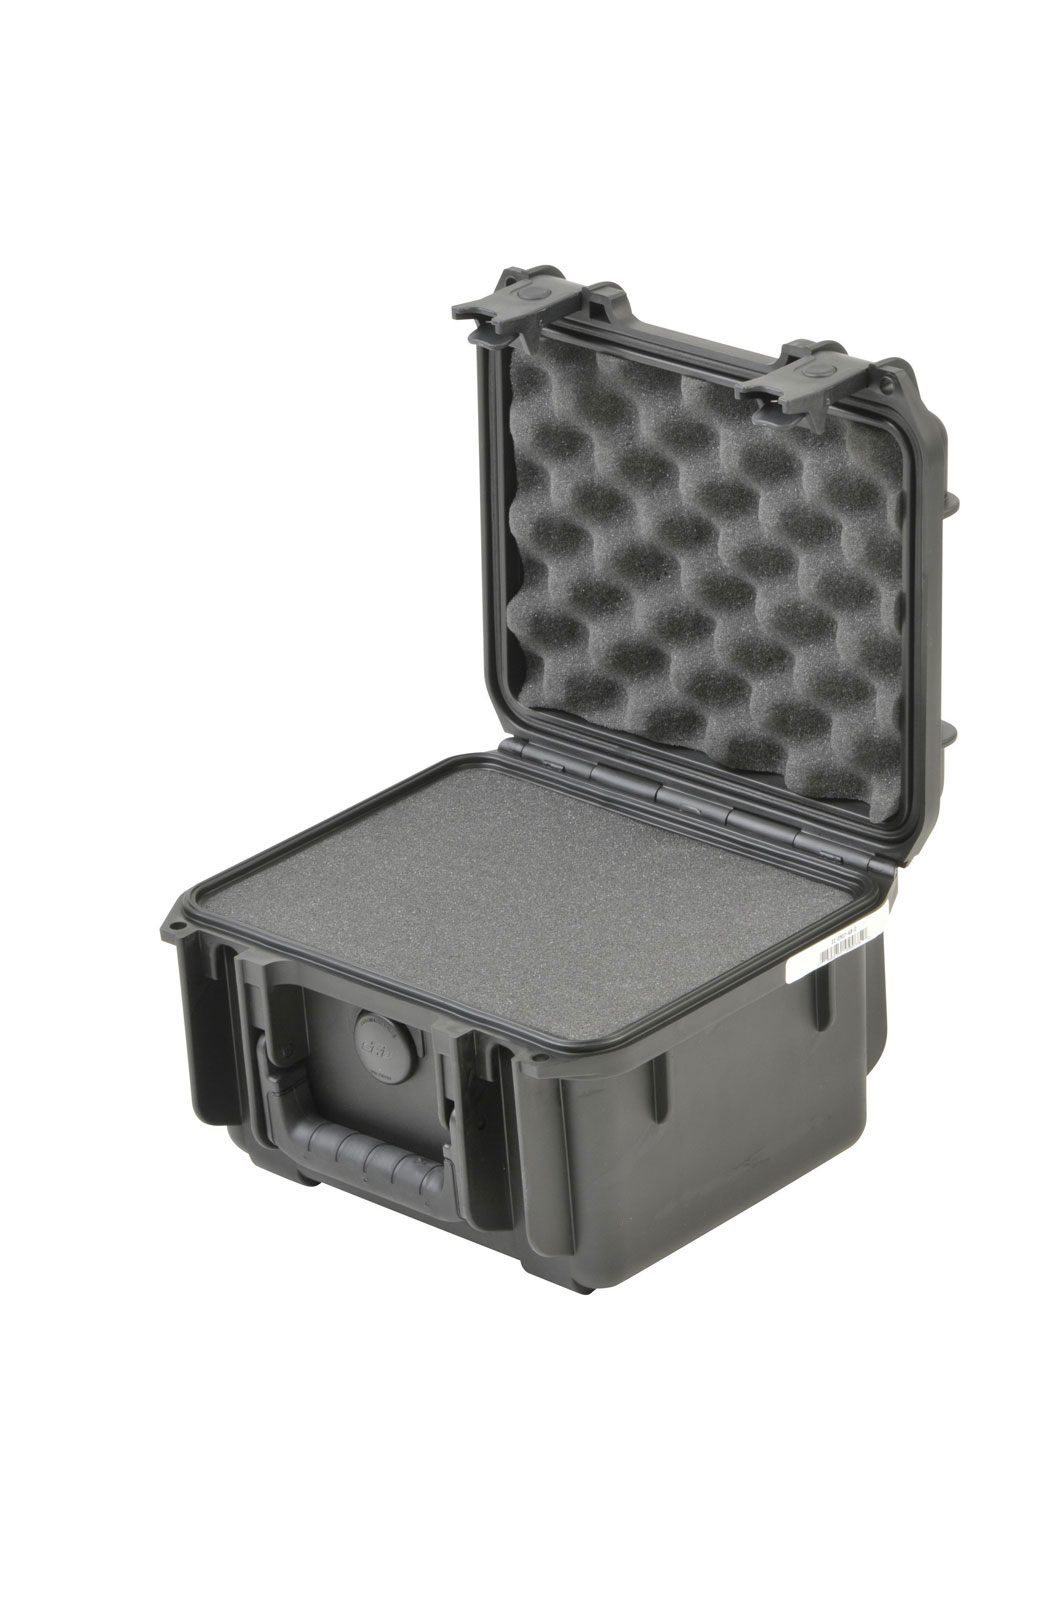 3I-0907-6B-C - UNIVERSAL WATERPROOF CASE 250 X 178 X 156 (125+30) MM WITH MINI-LATCH, CUBED FOAM